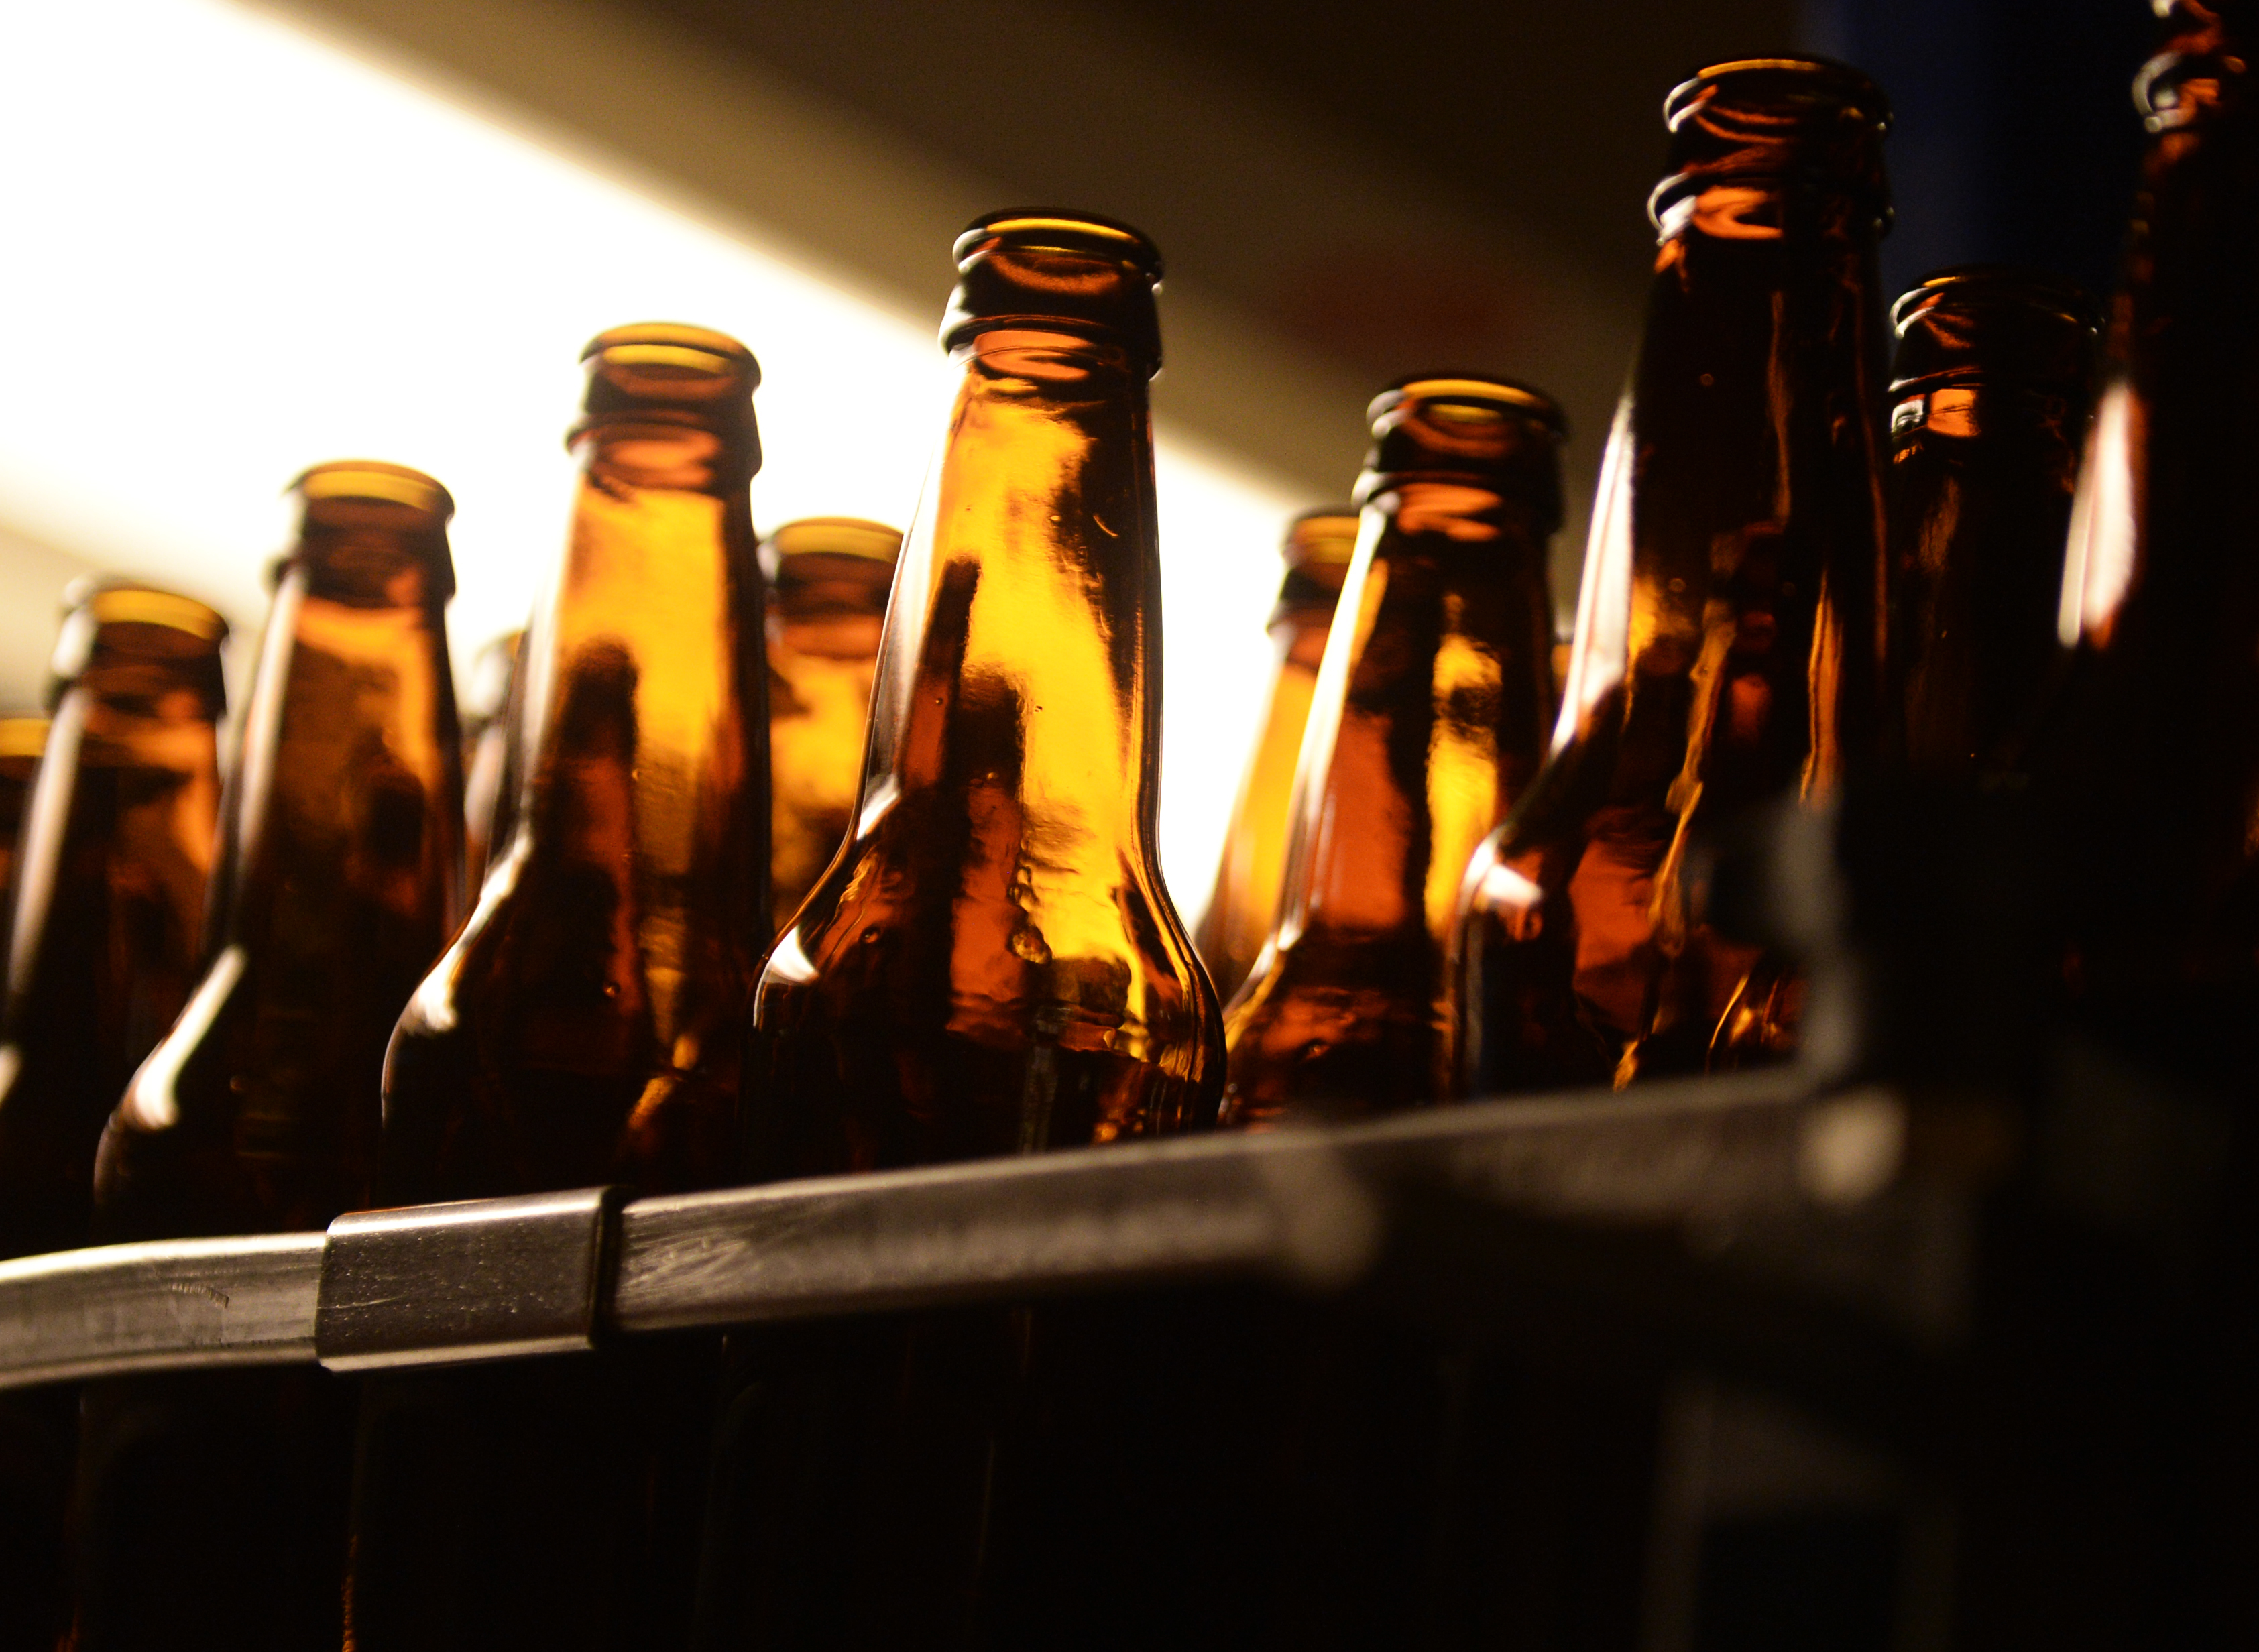 American craft beer exports overseas are starting to grow